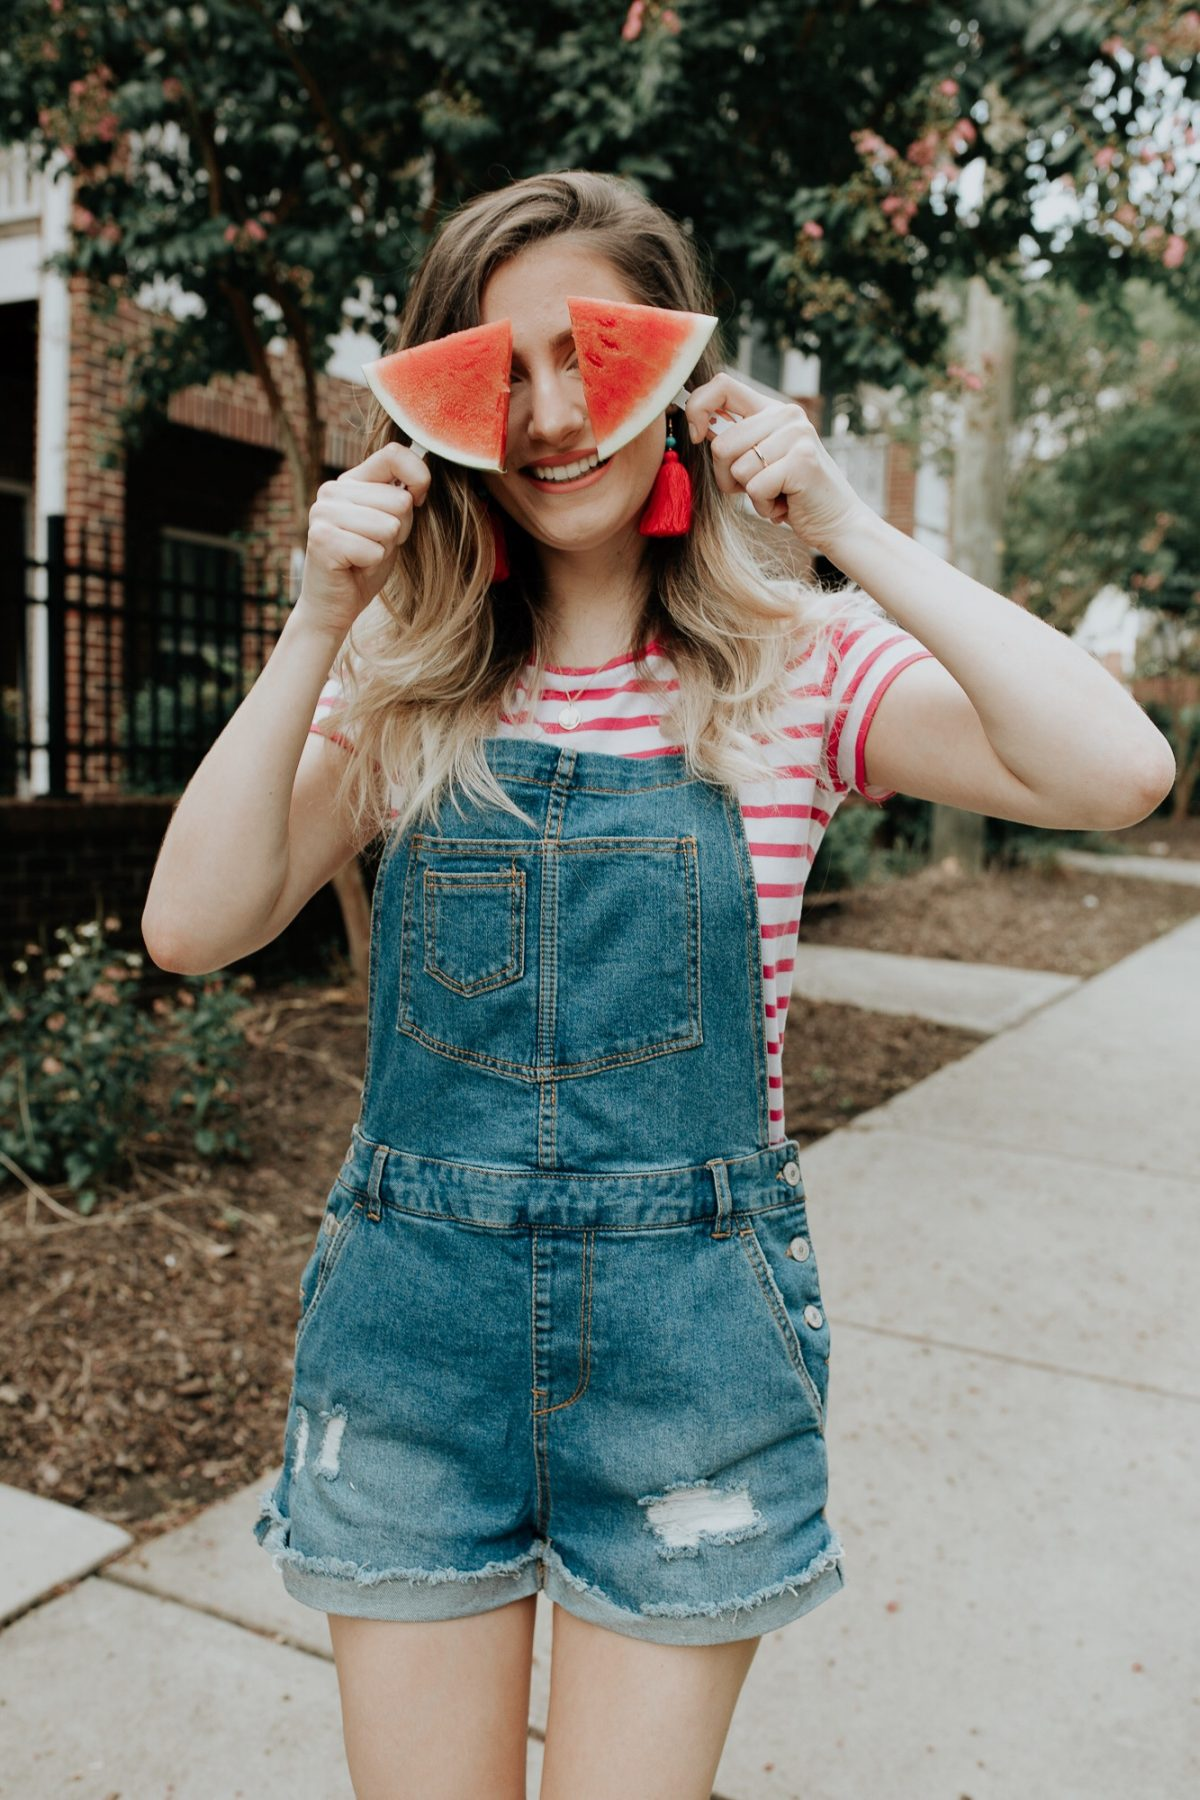 Watermelon recipes in celebration of National Watermelon Day by North Carolina fashion and lifestyle blogger Jessica Linn.